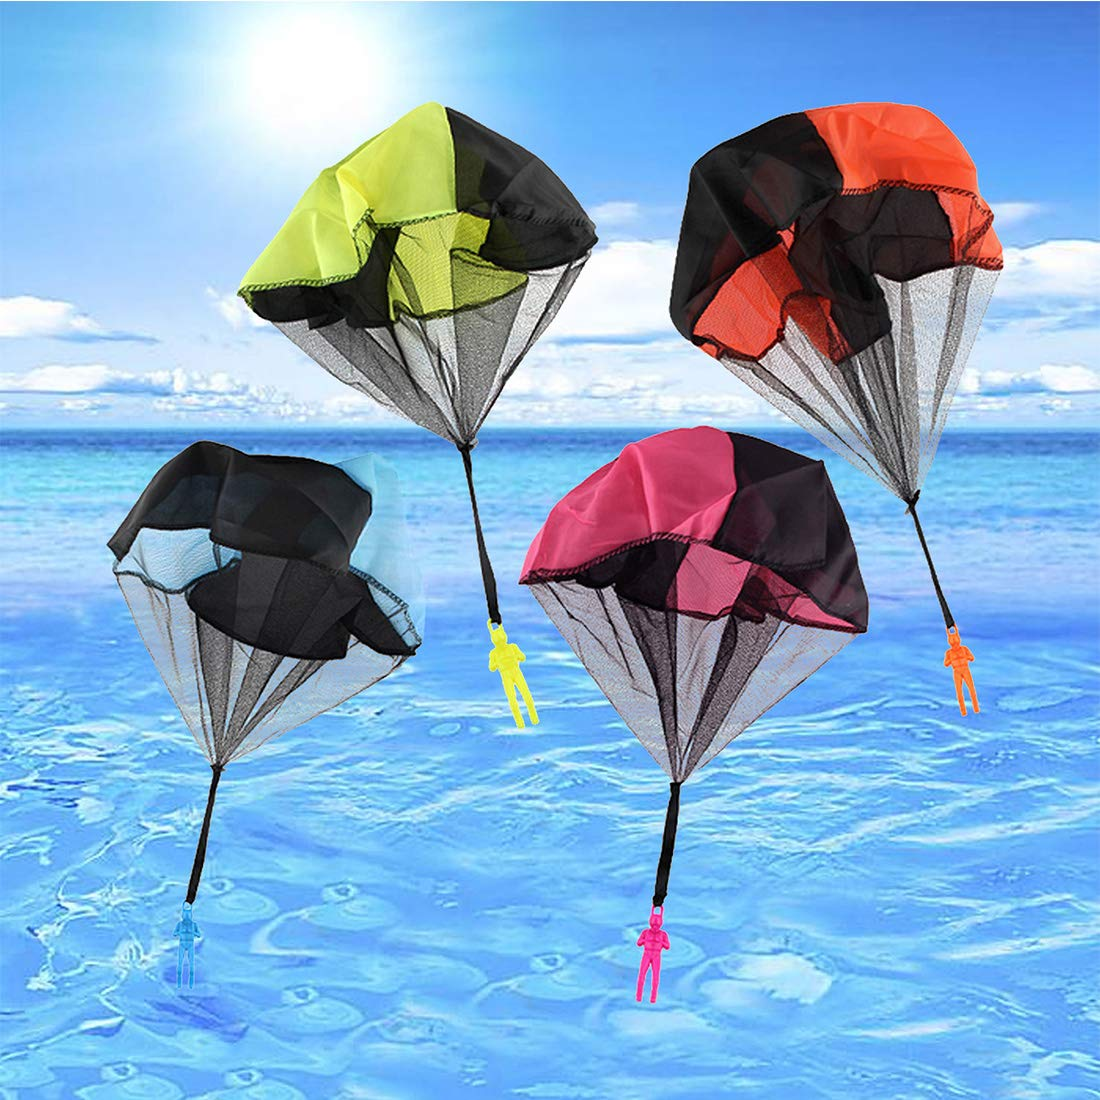 Huihui Decoration 7 Pieces Parachute Toys,Tangle Free Parachute Men Throwing Hand Throw Soldiers Toss It Up and Watching Landing Outdoor Parachute for Kids by Huihui Decoration (Image #5)